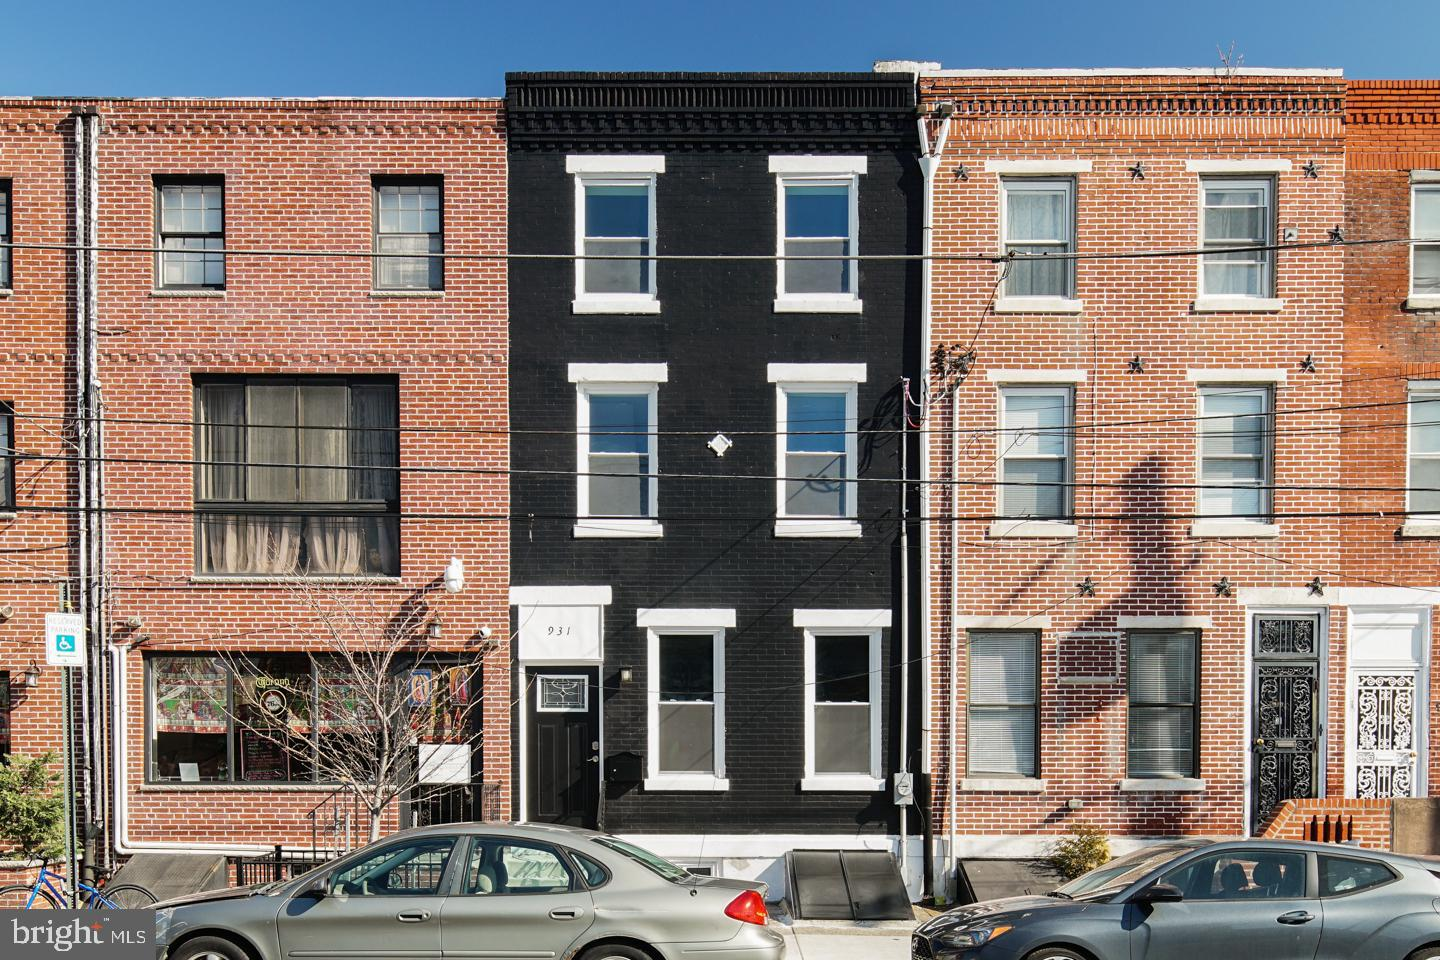 931 Washington Avenue Philadelphia, PA 19147